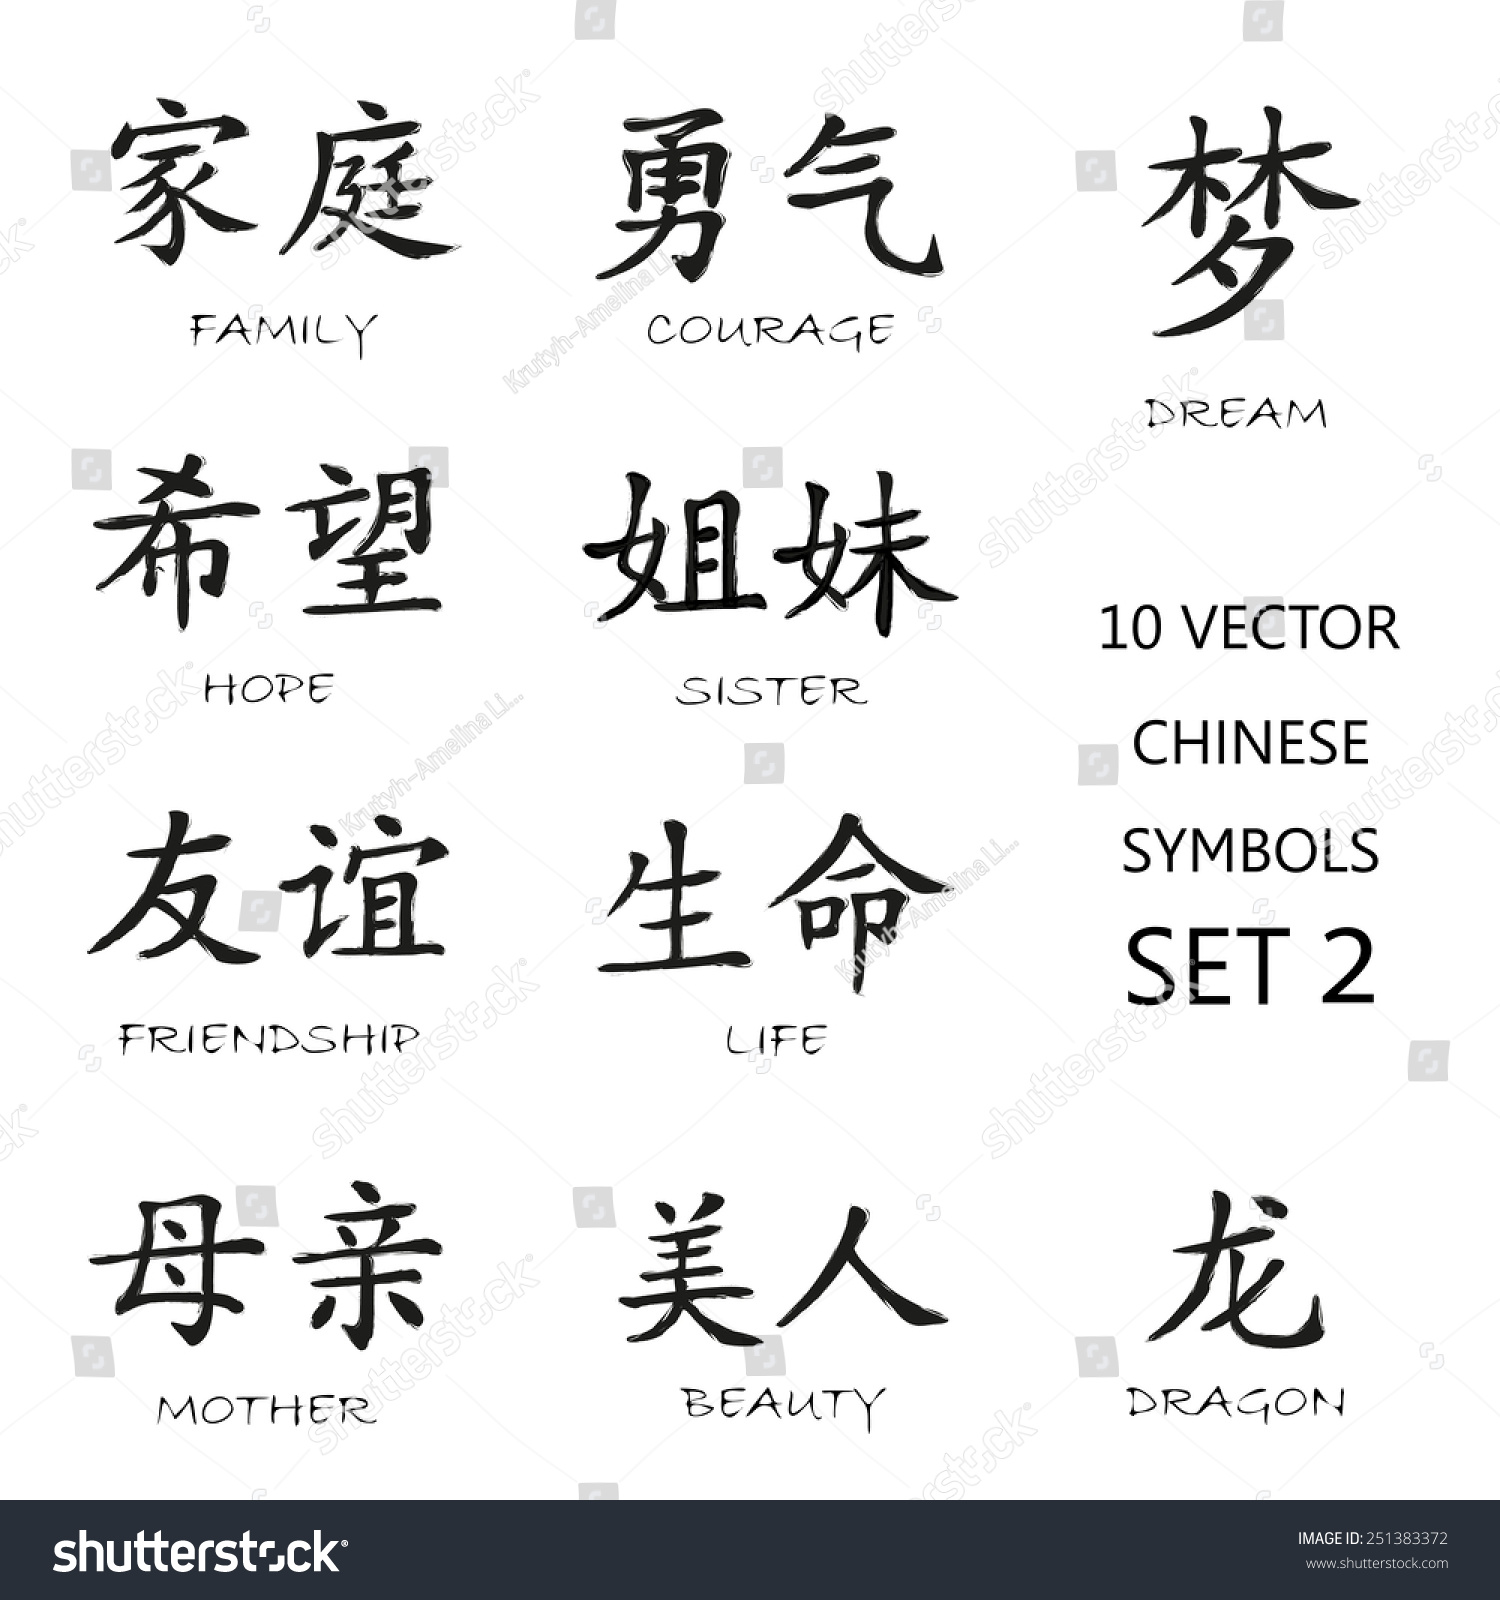 Classic chinese ink symbols set 2 stock vector 251383372 classic chinese ink symbols set 2 character dragon dream courage family biocorpaavc